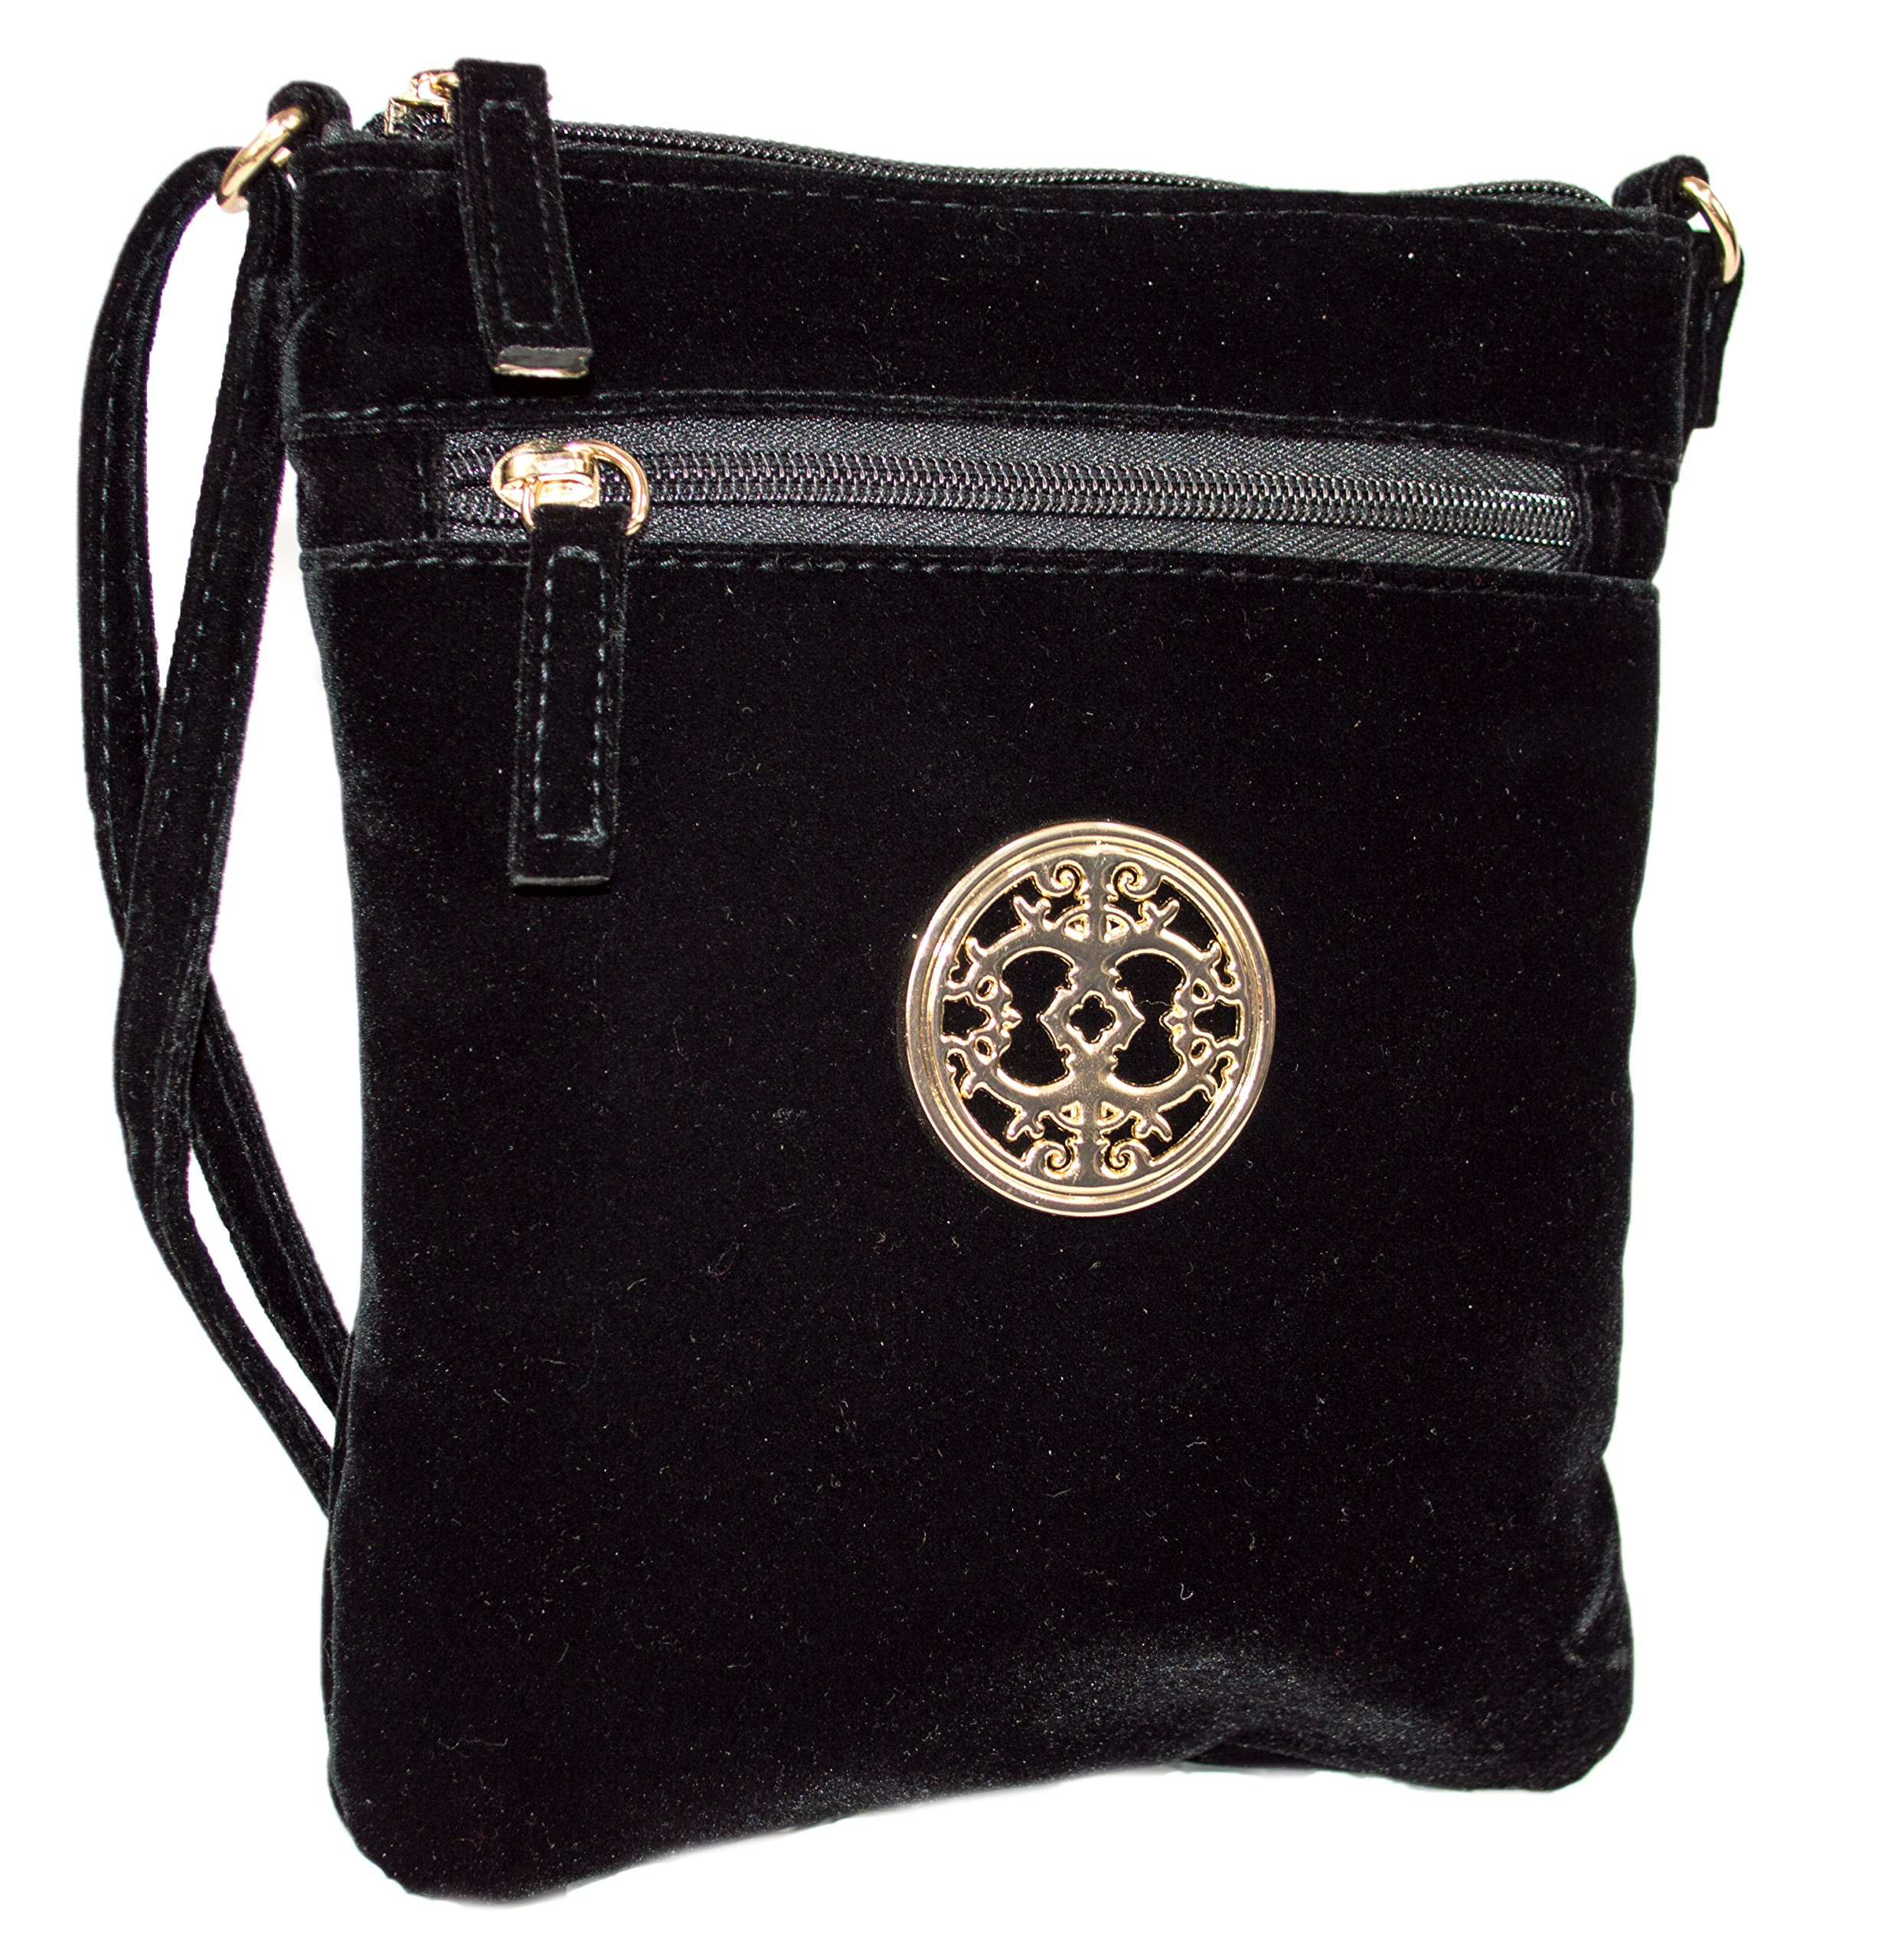 Rising Phoenix Industries Black Vintage Style Velvet Crossbody Party Bag, Small Purse with Shoulder Strap